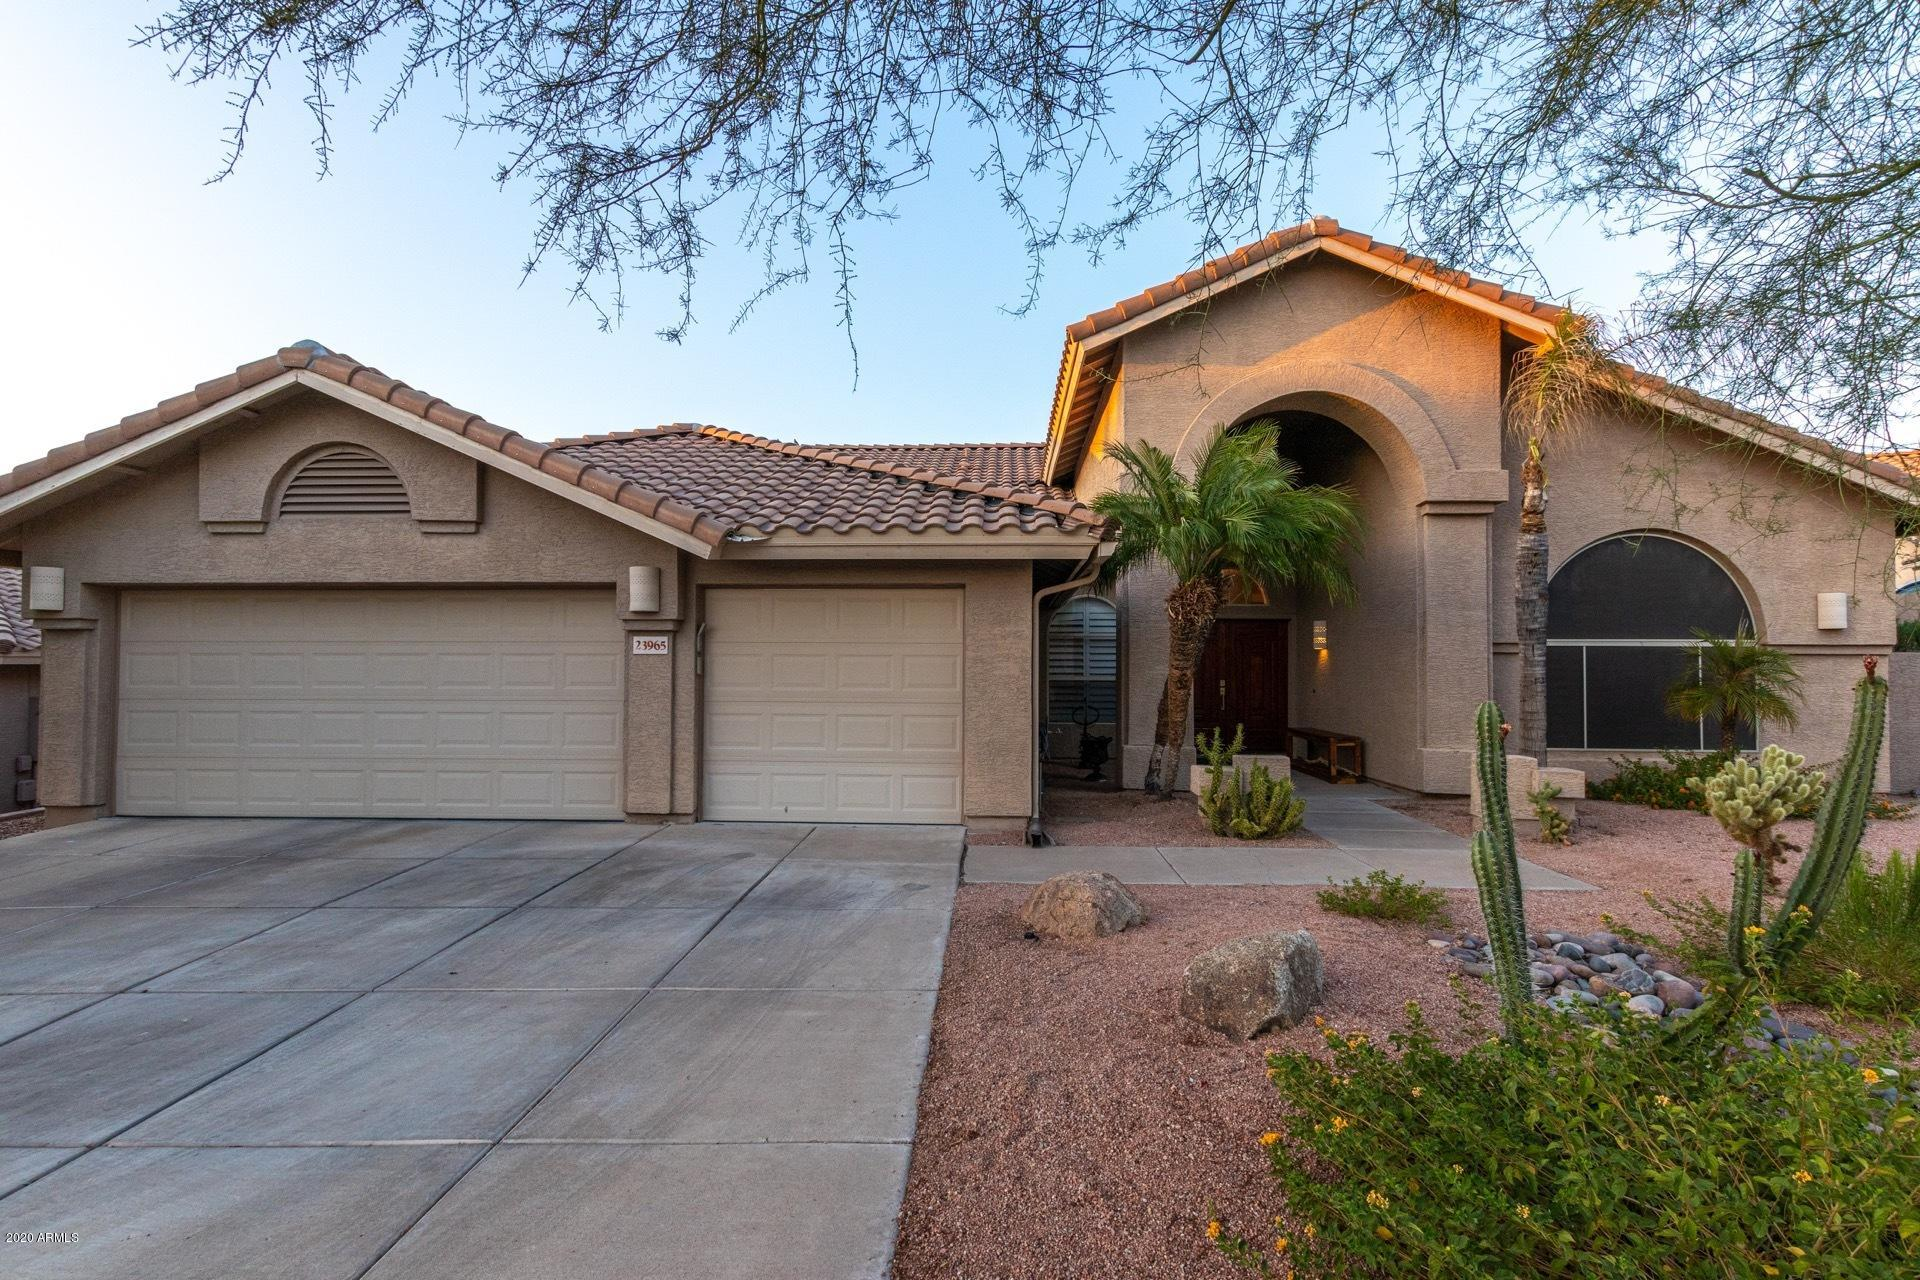 23965 74TH Place, Scottsdale, Arizona 85255, 3 Bedrooms Bedrooms, ,2.5 BathroomsBathrooms,Residential,For Sale,74TH,6137767